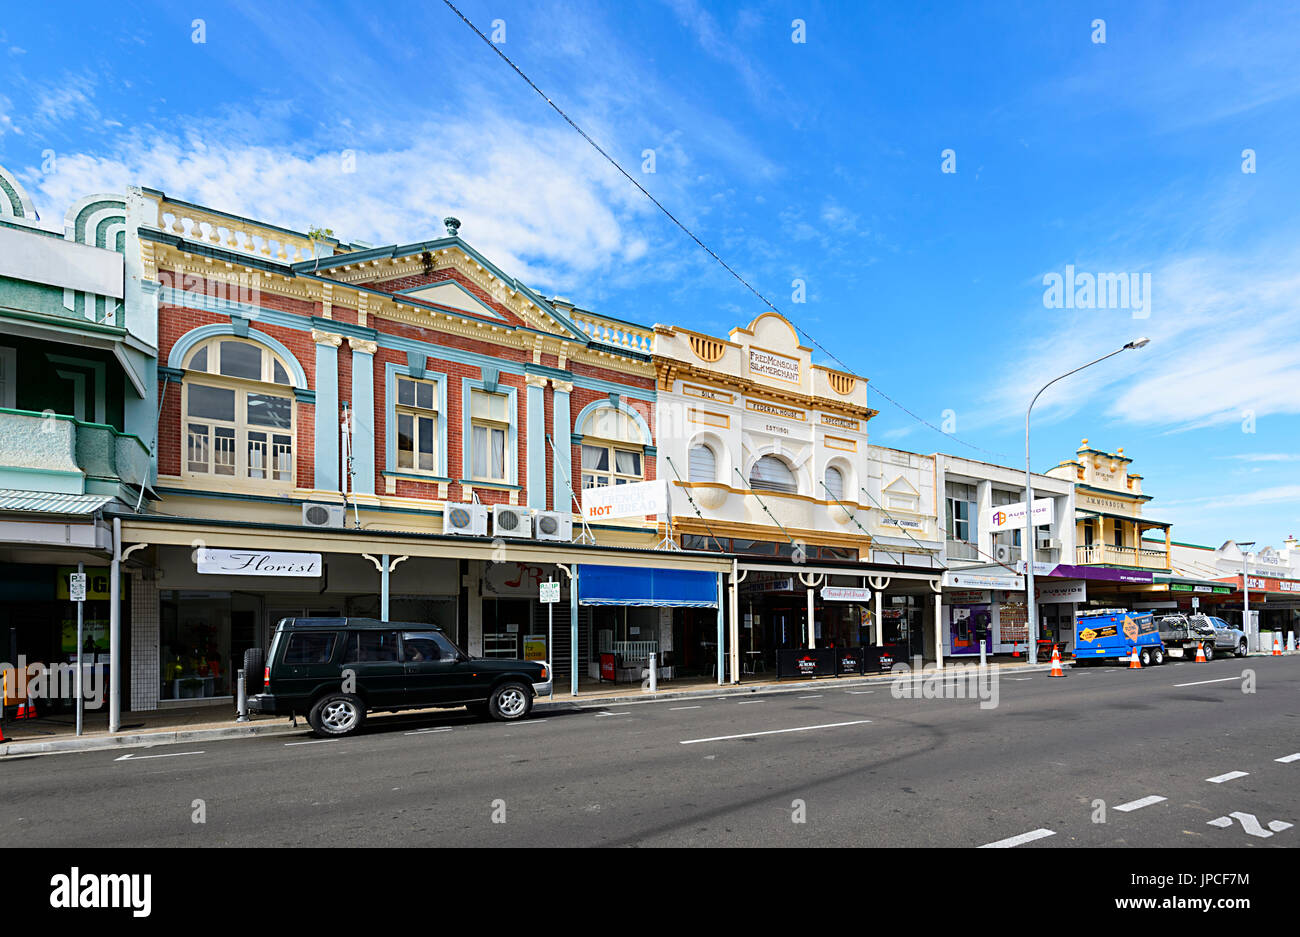 Koloniale Gebäude im Stadtzentrum, Adelaide Street, Maryborough, Queensland, Queensland, Australien Stockbild